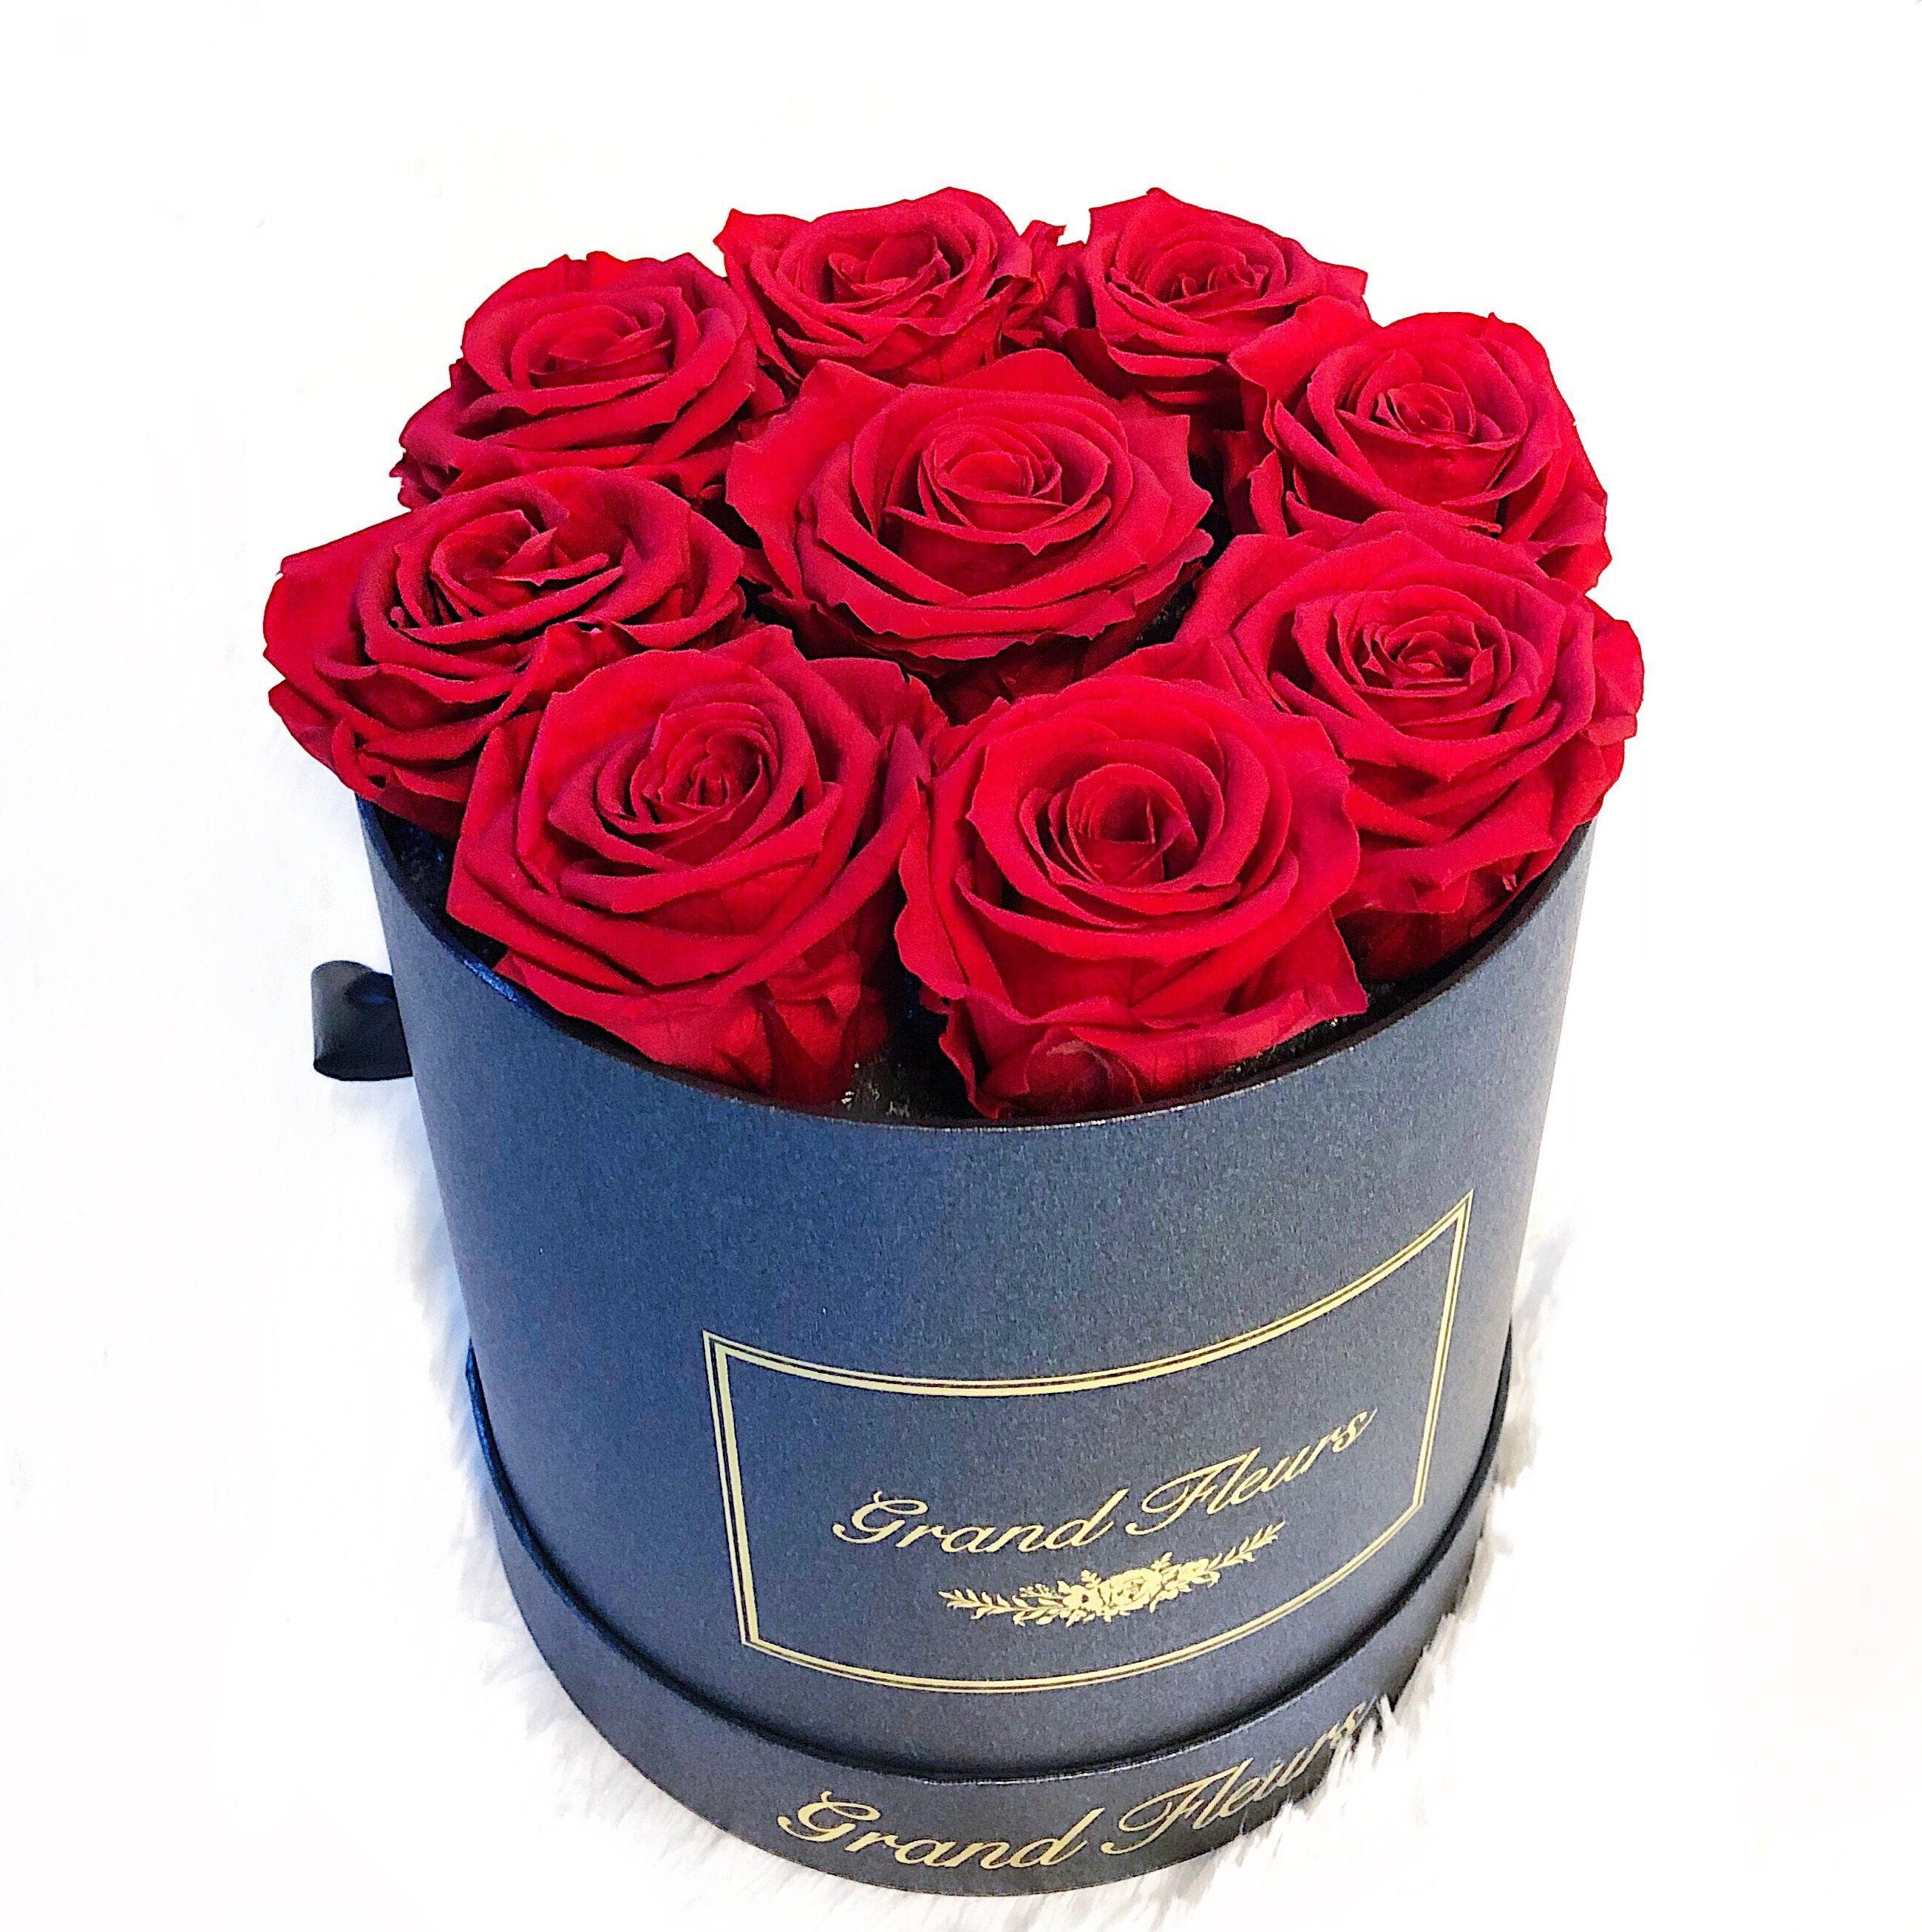 Infinity Signature Round Mother S Day Pre Order In 2021 Infinity Signature Rose Color